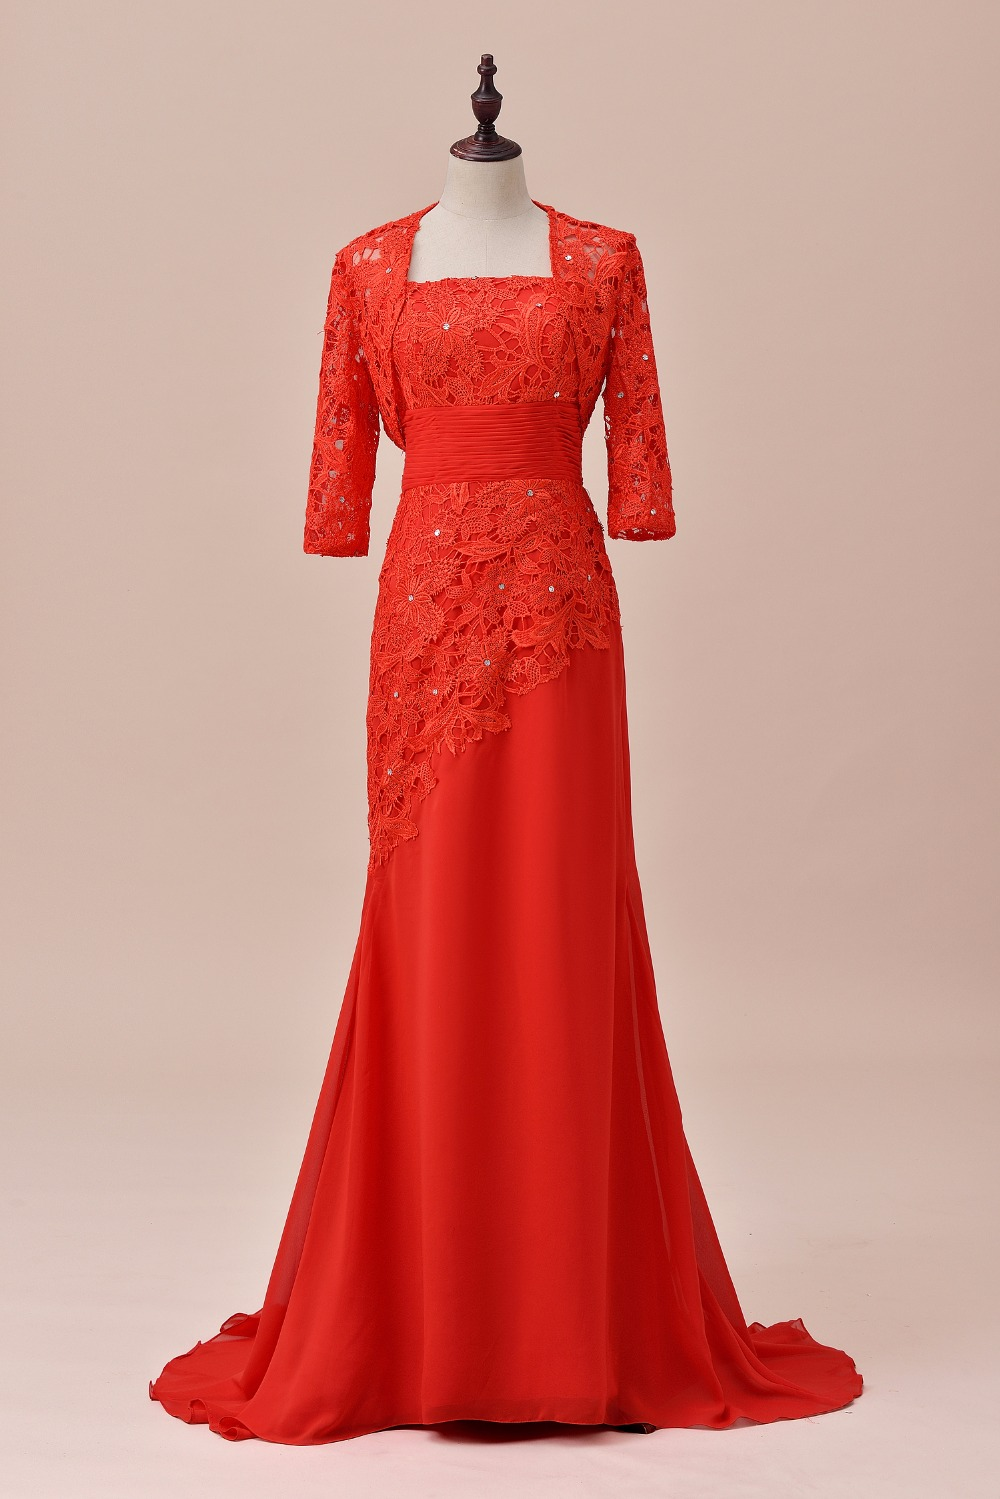 A Line 1/2 Sleeves Lace Chiffon Red 2 Pcs Mother Of The Bride Dress With Jacket Outfit Wedding Fashion Formal Long Bridal Gown